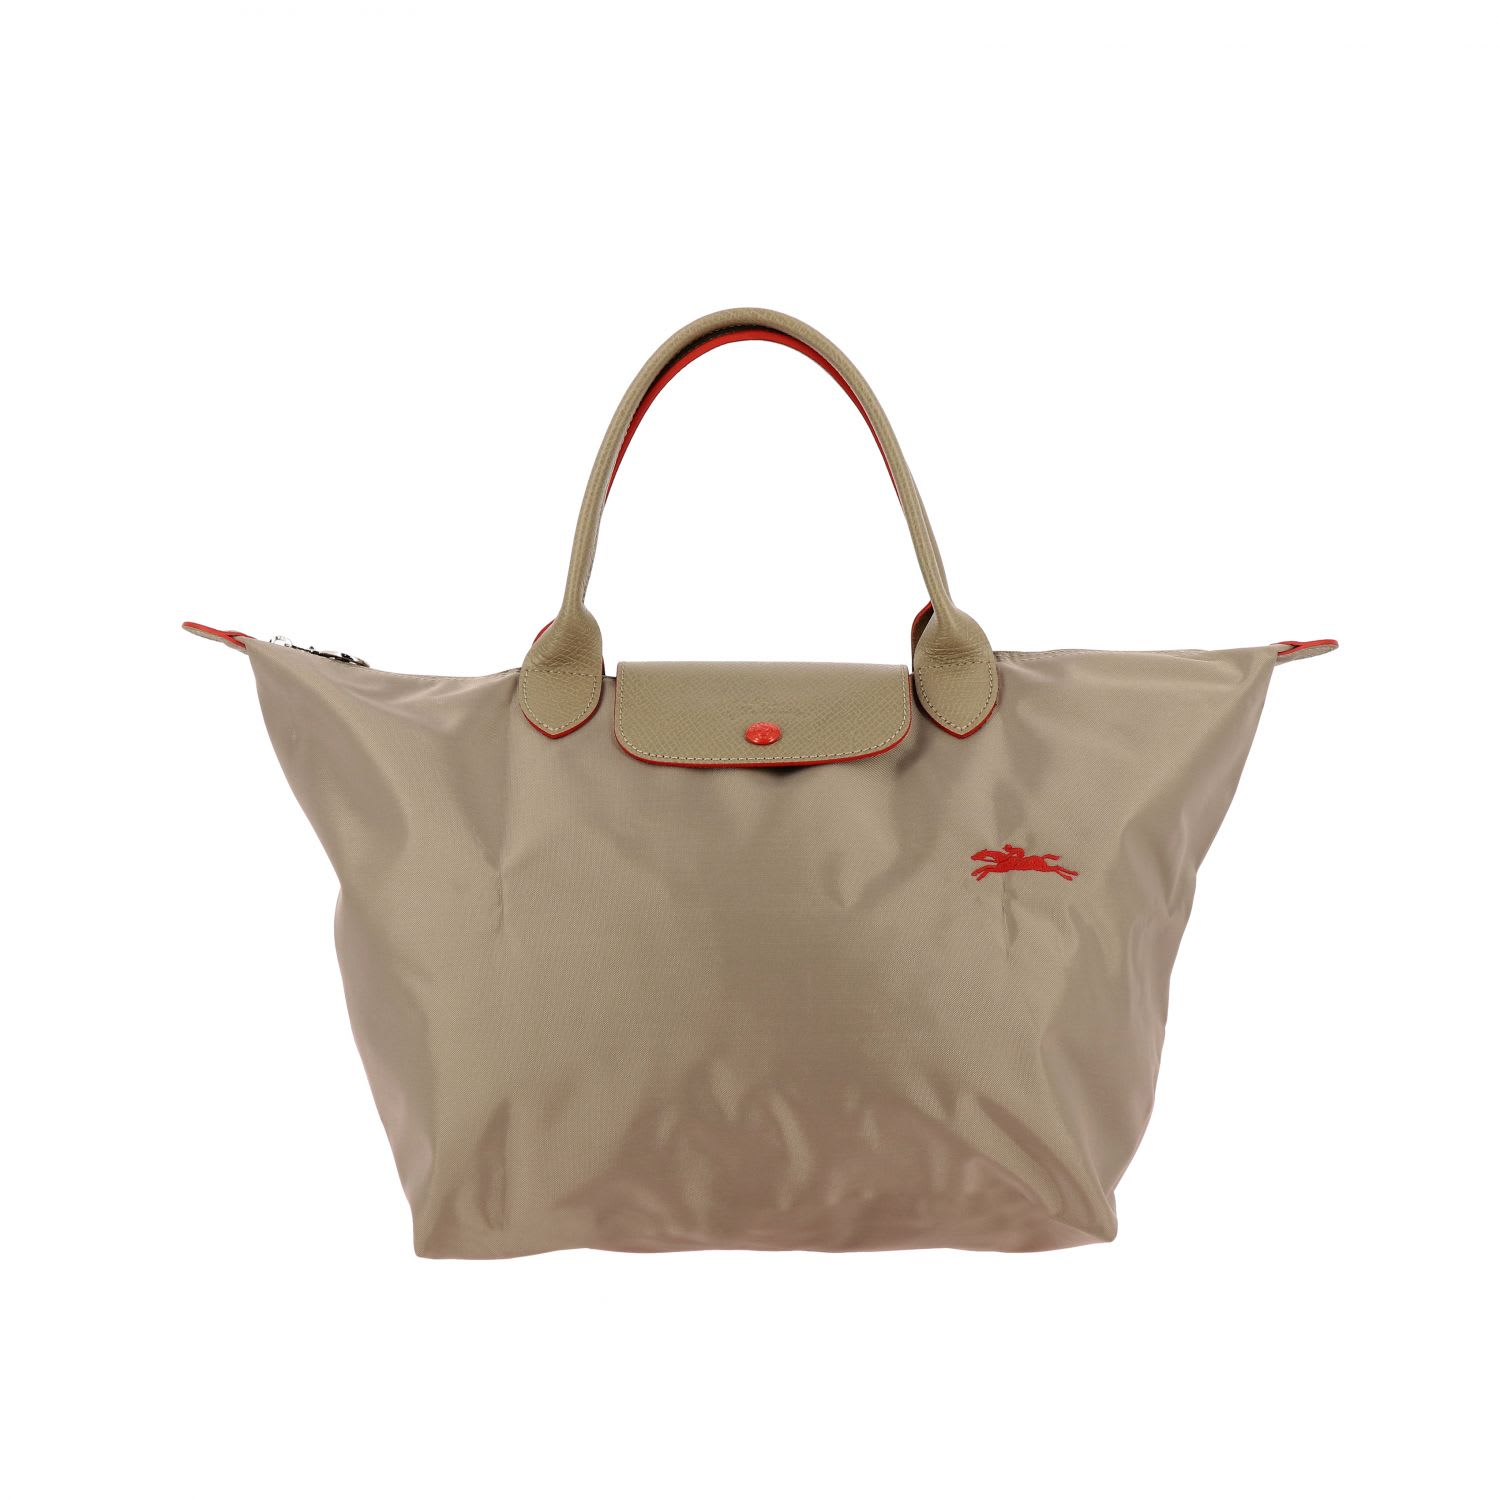 Longchamp Bag In Nylon With Embroidered Logo In Dove Grey